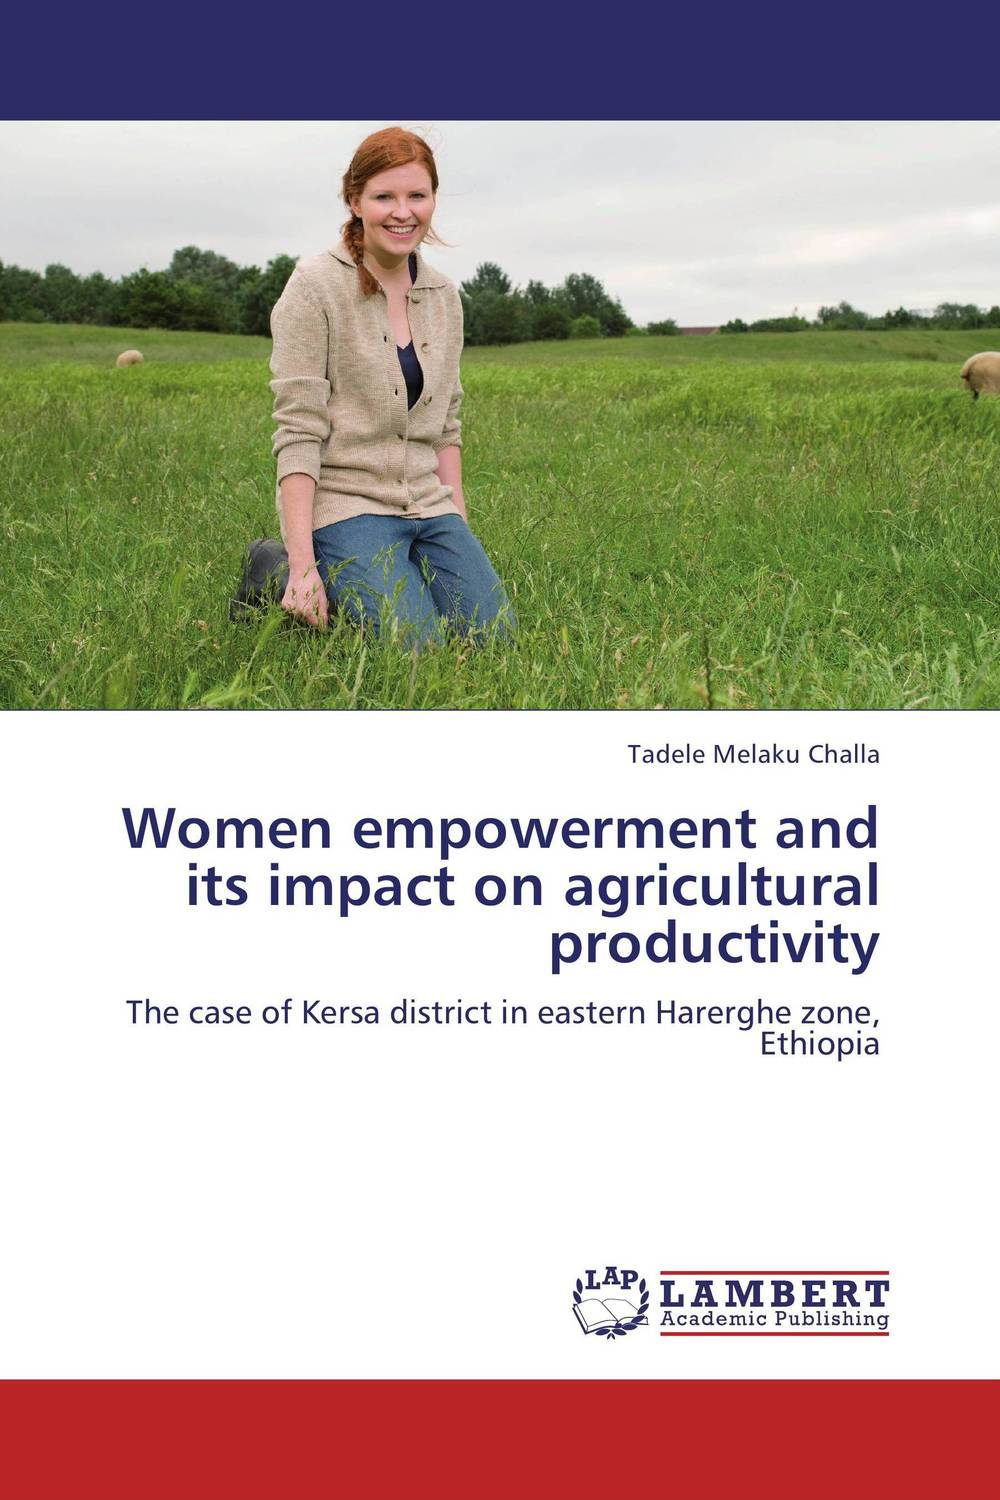 Women empowerment and its impact on agricultural productivity sources of chloride and its impact on groundwater